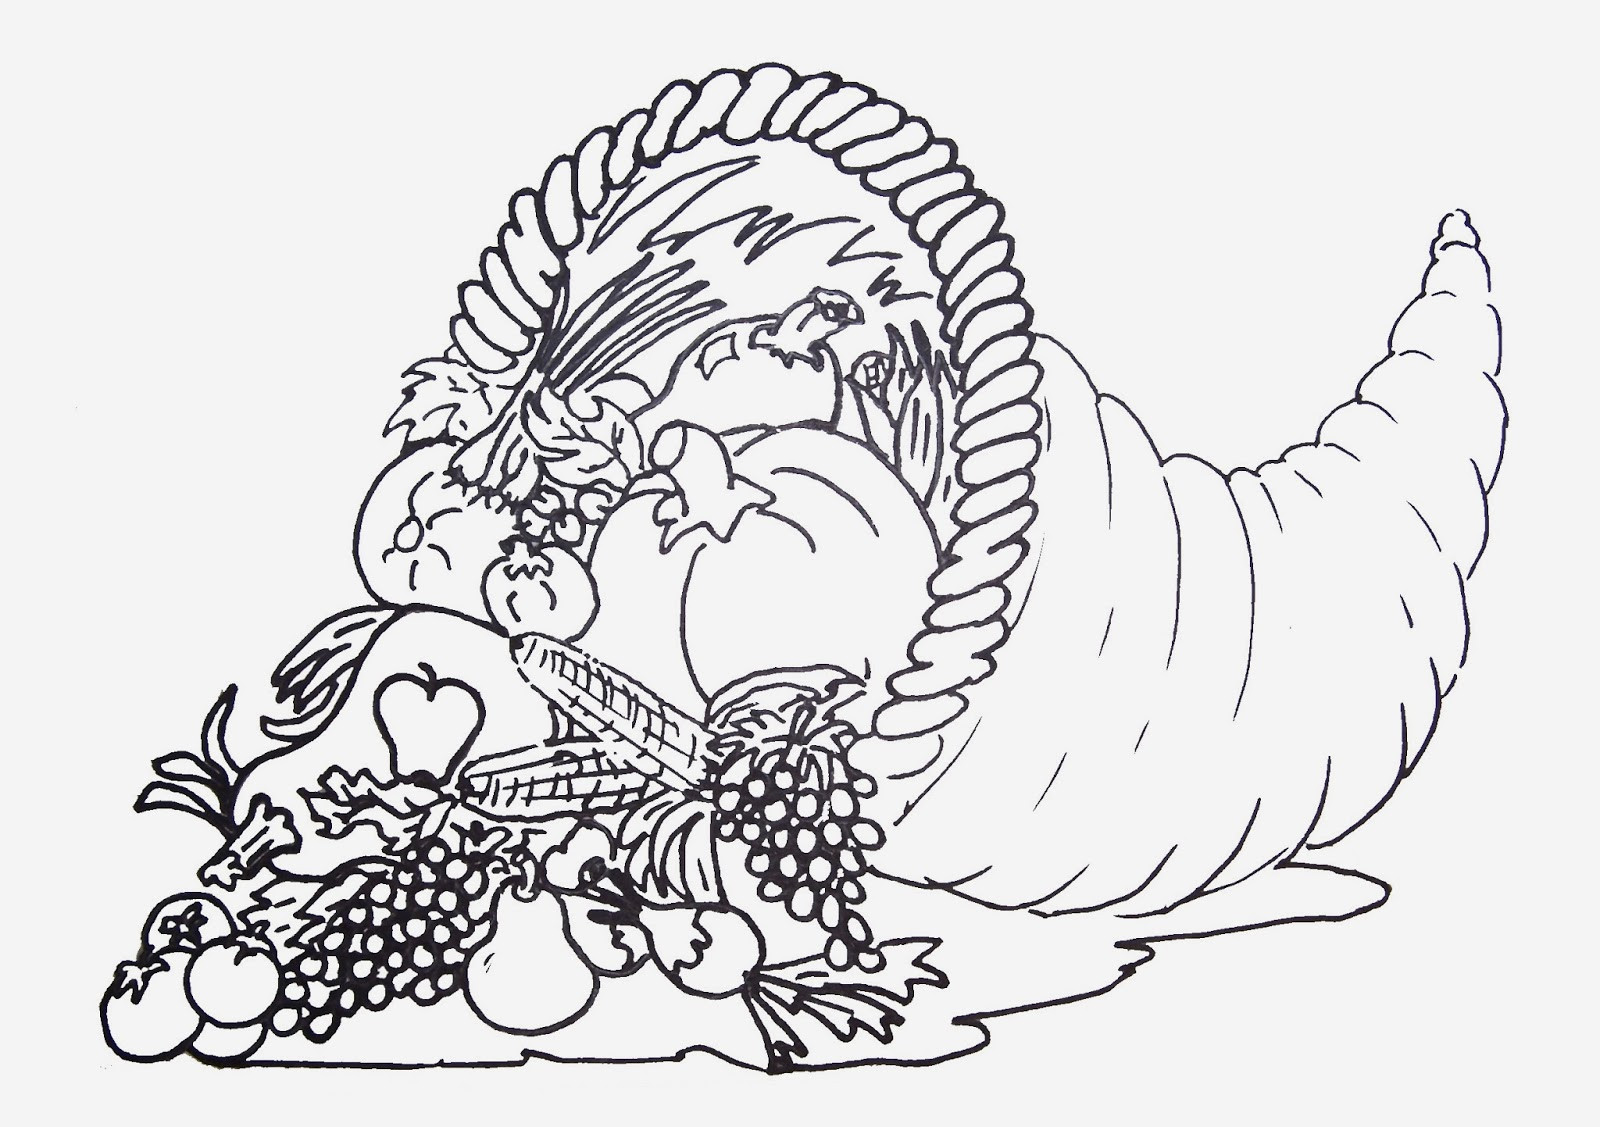 Thanksgiving Coloring Pages For Adults Free  Printable Thanksgiving Coloring Pages For Adults